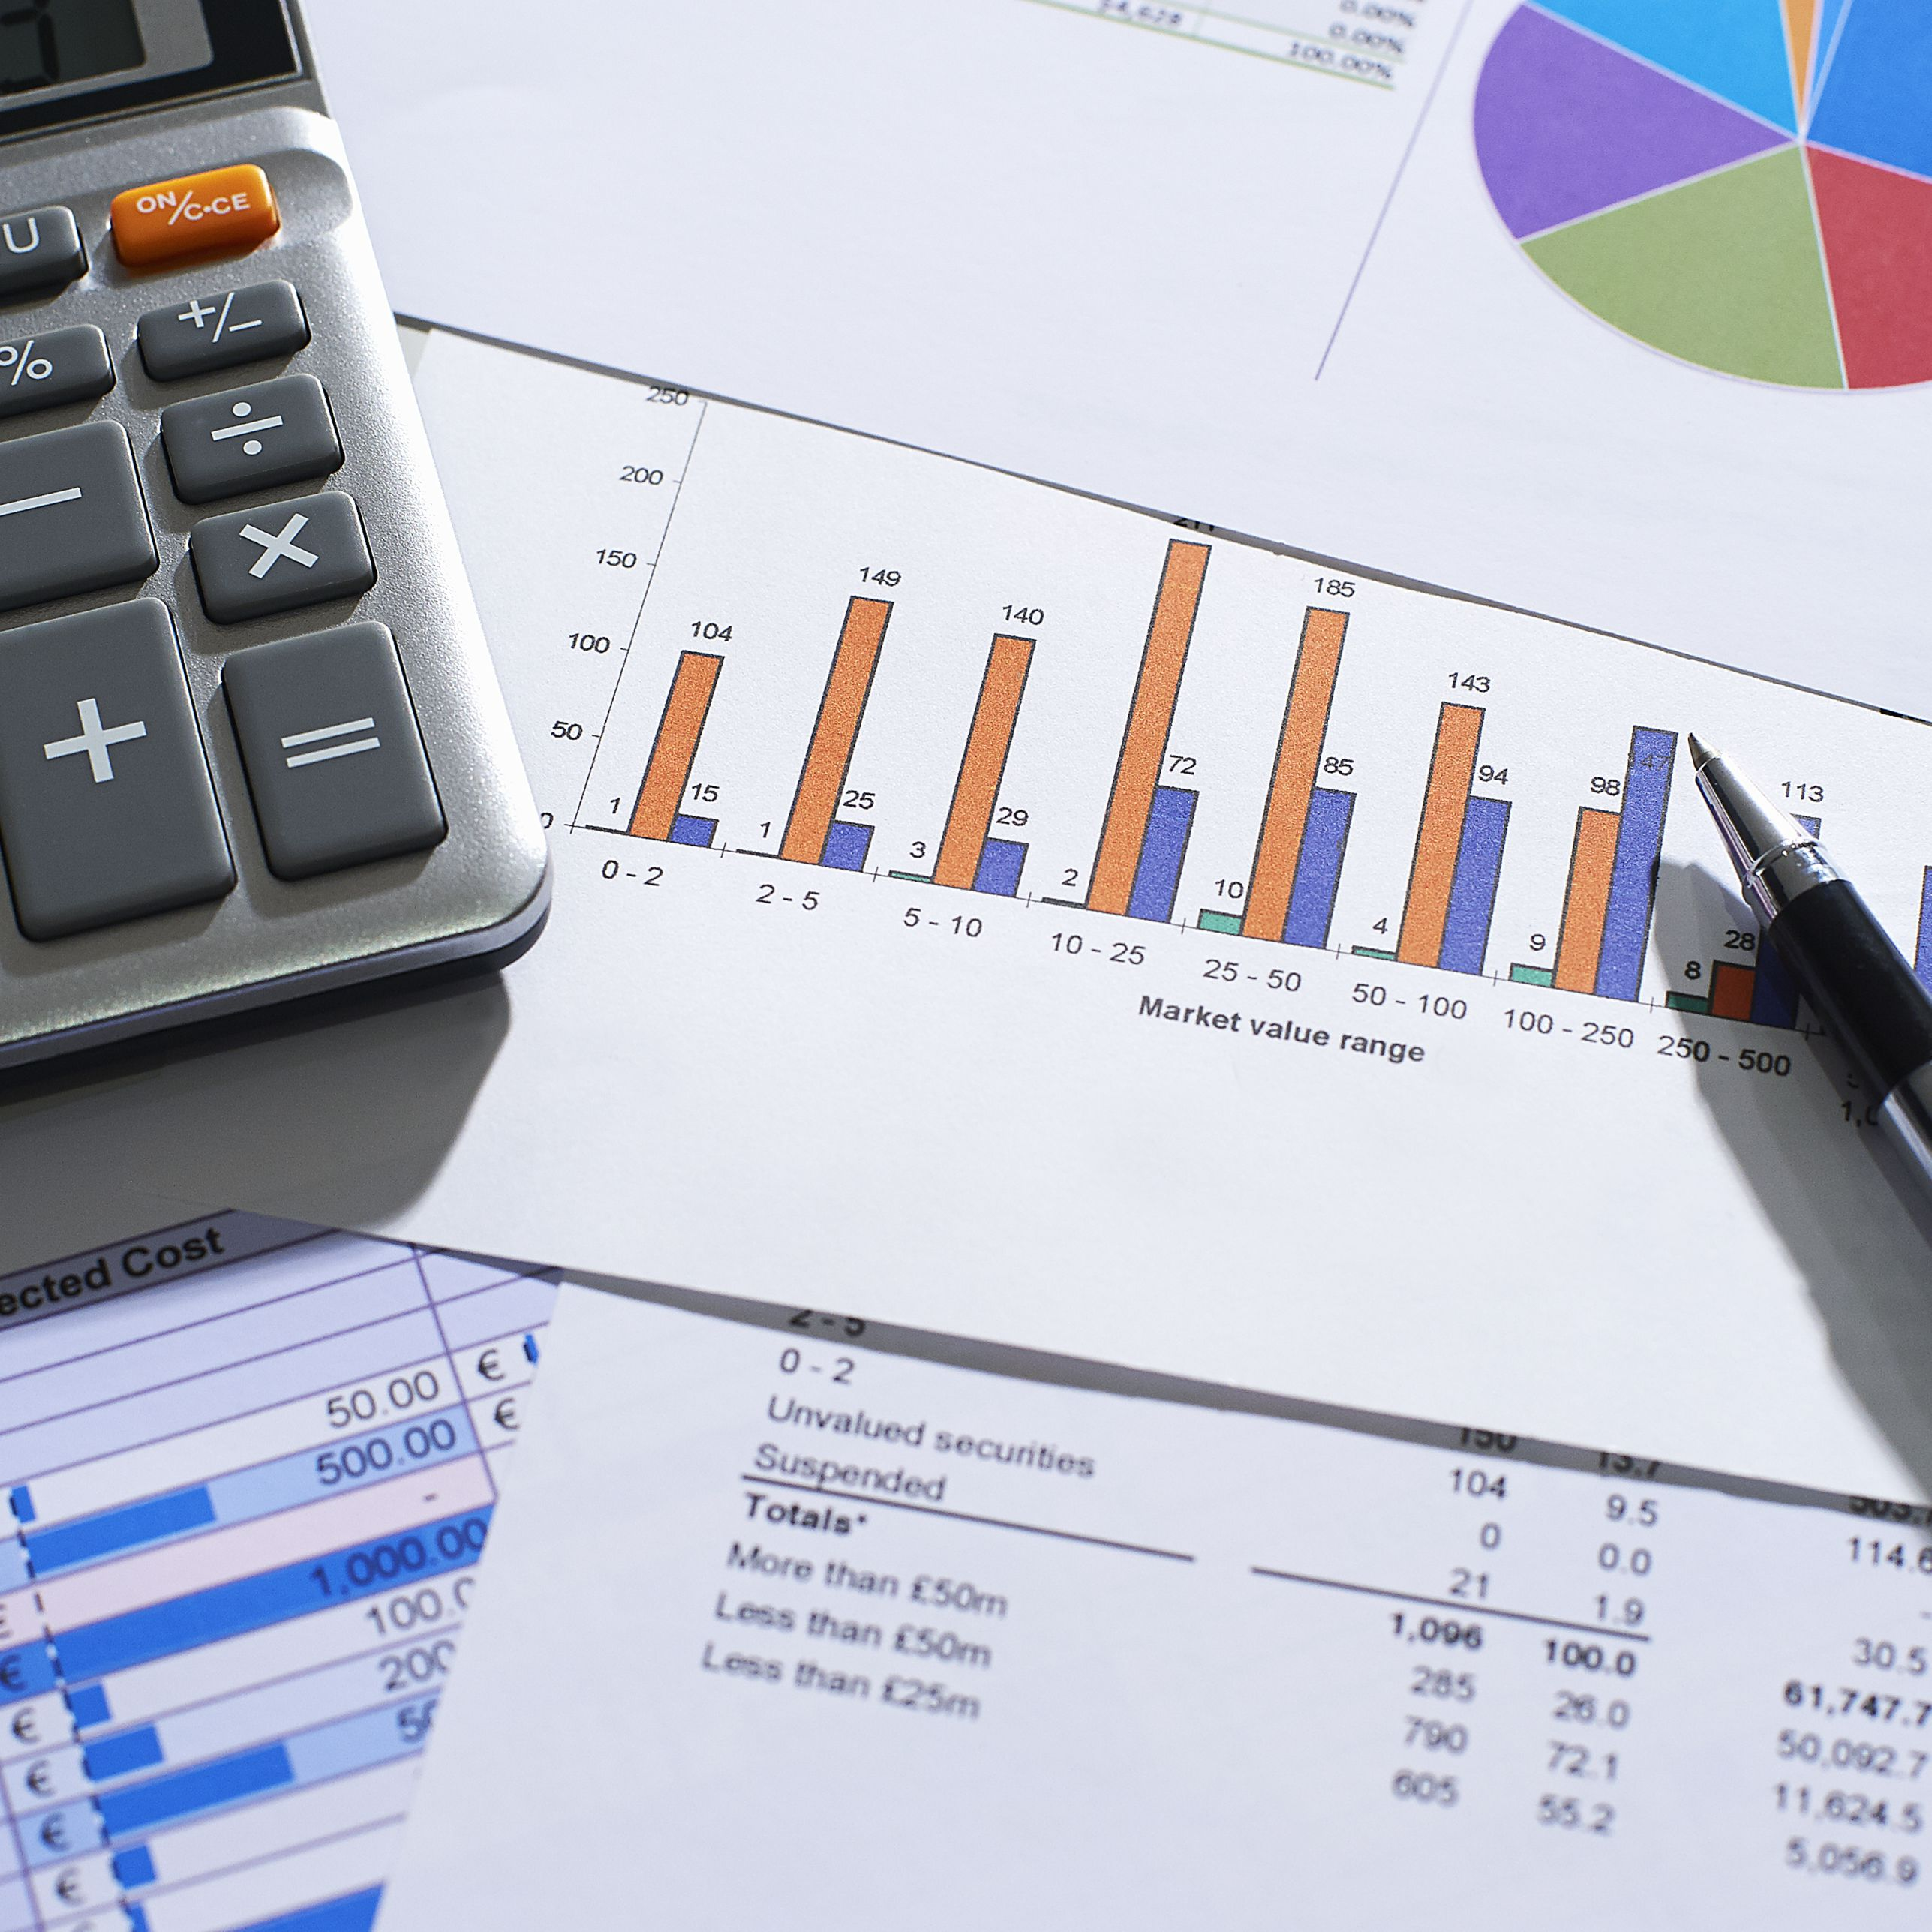 Putnam investments rollover paperwork ups reinvesting in itself